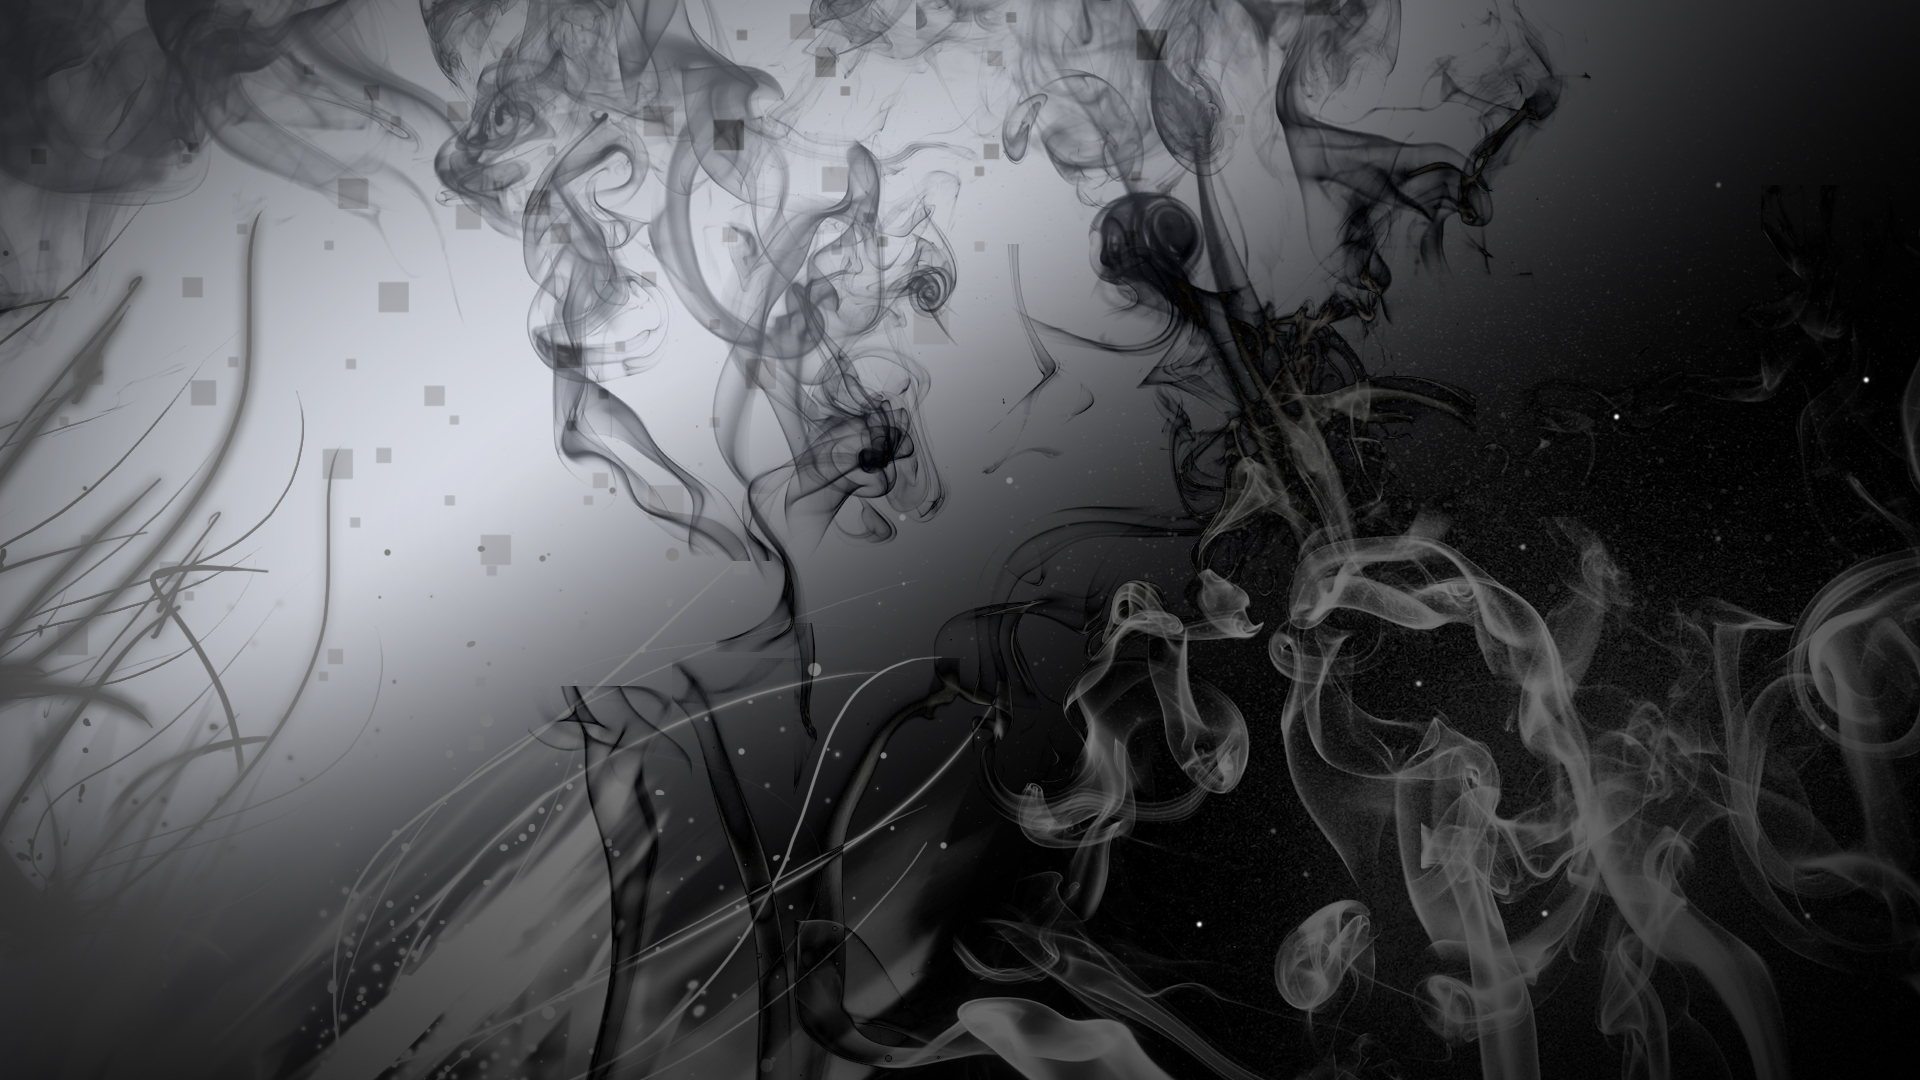 Smoke Hd Wallpapers Posted By Ryan Simpson